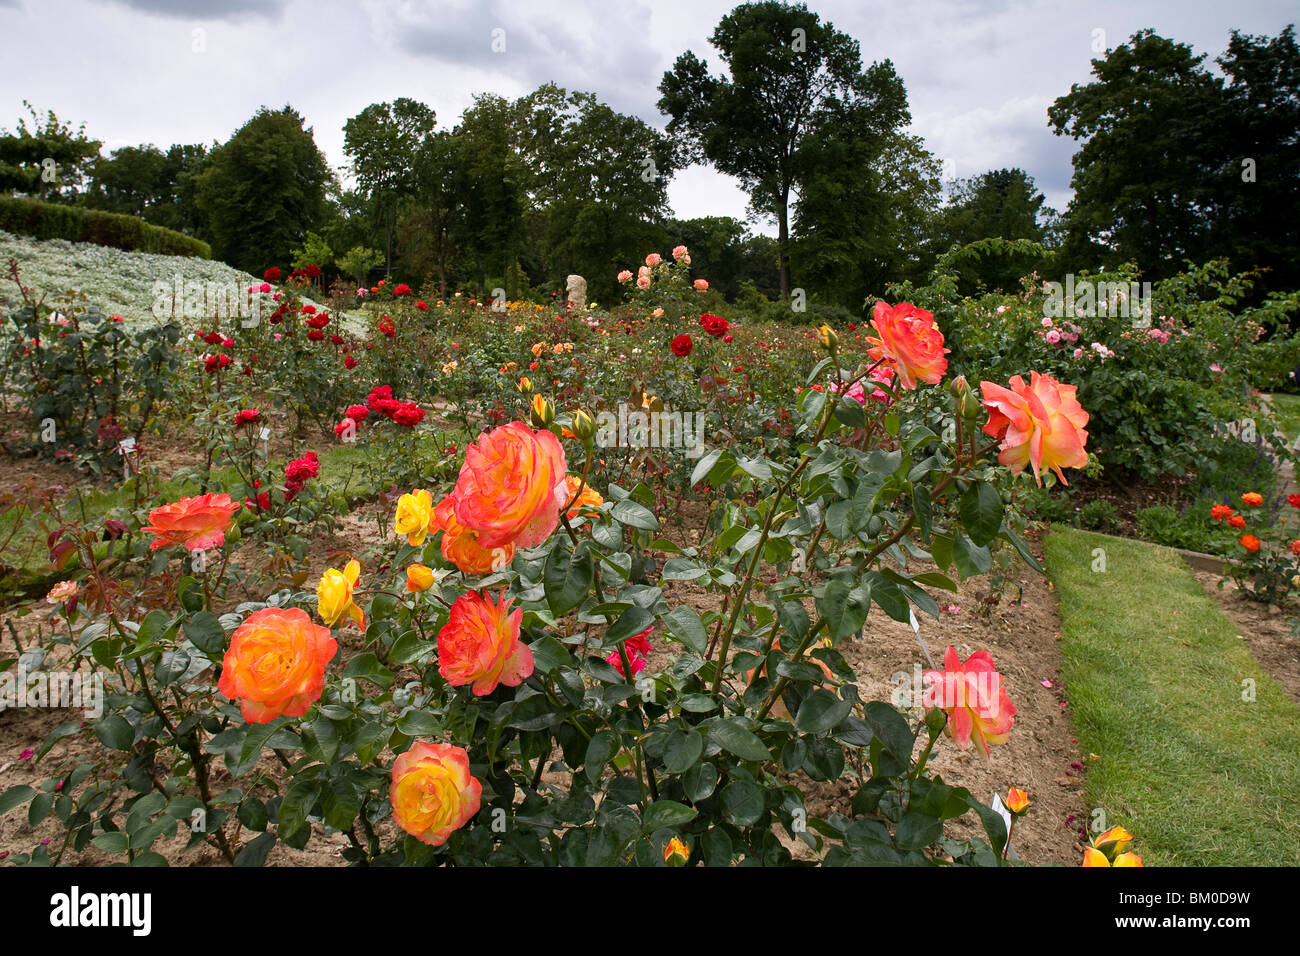 Europa Rosarium in Sangerhausen, the largest collection of roses in the world, Saxony-Anhalt, Germany, Europe - Stock Image